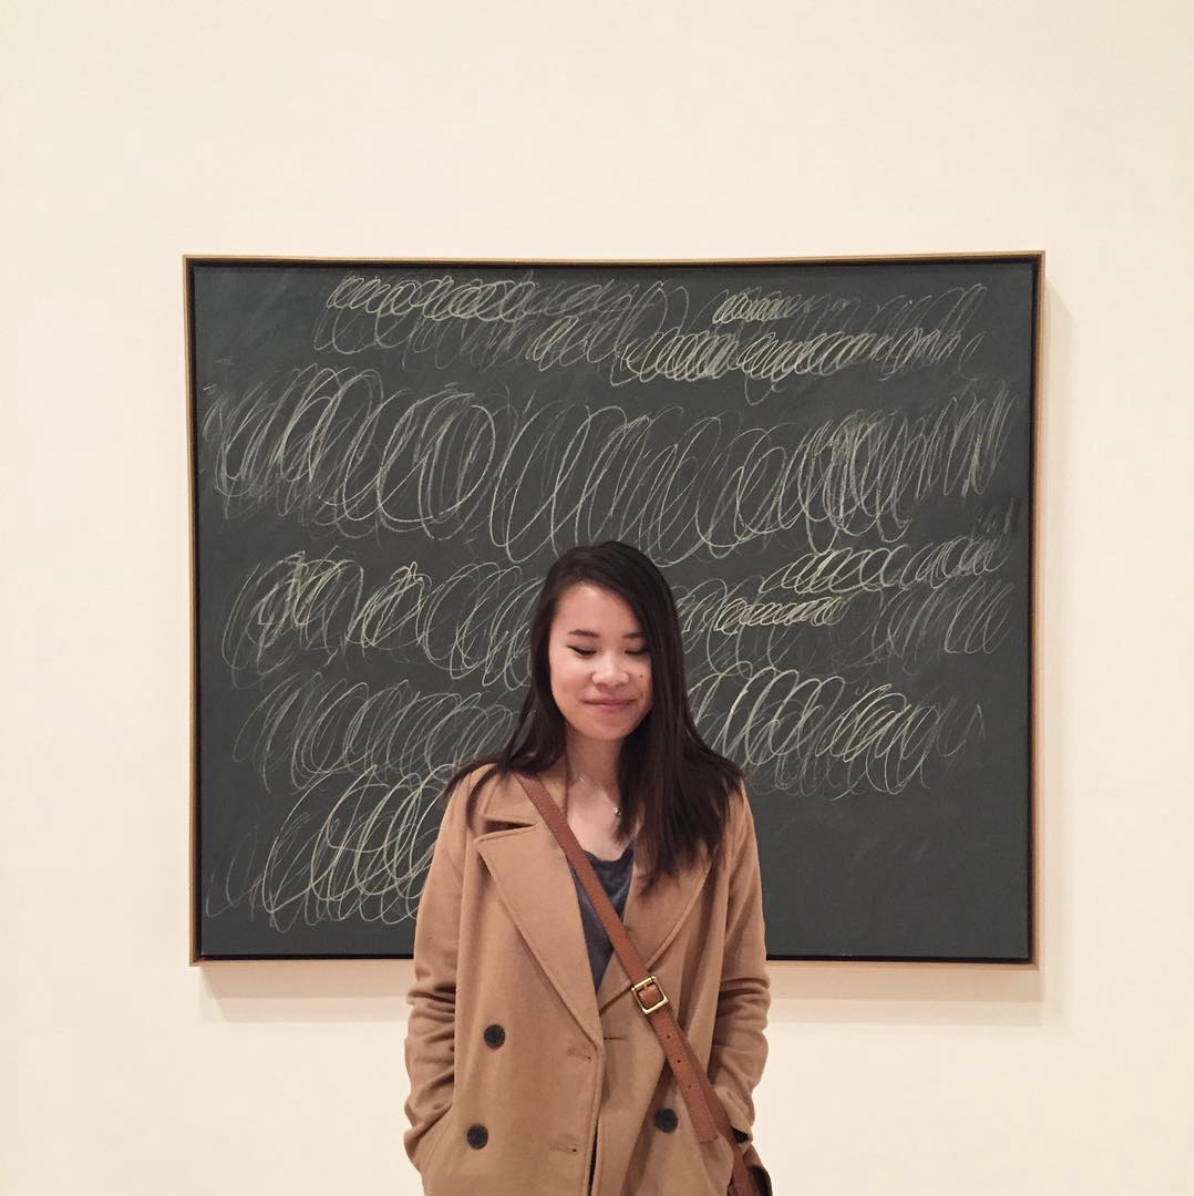 Also me and Cy Twombly at MOCA Grand, 2016